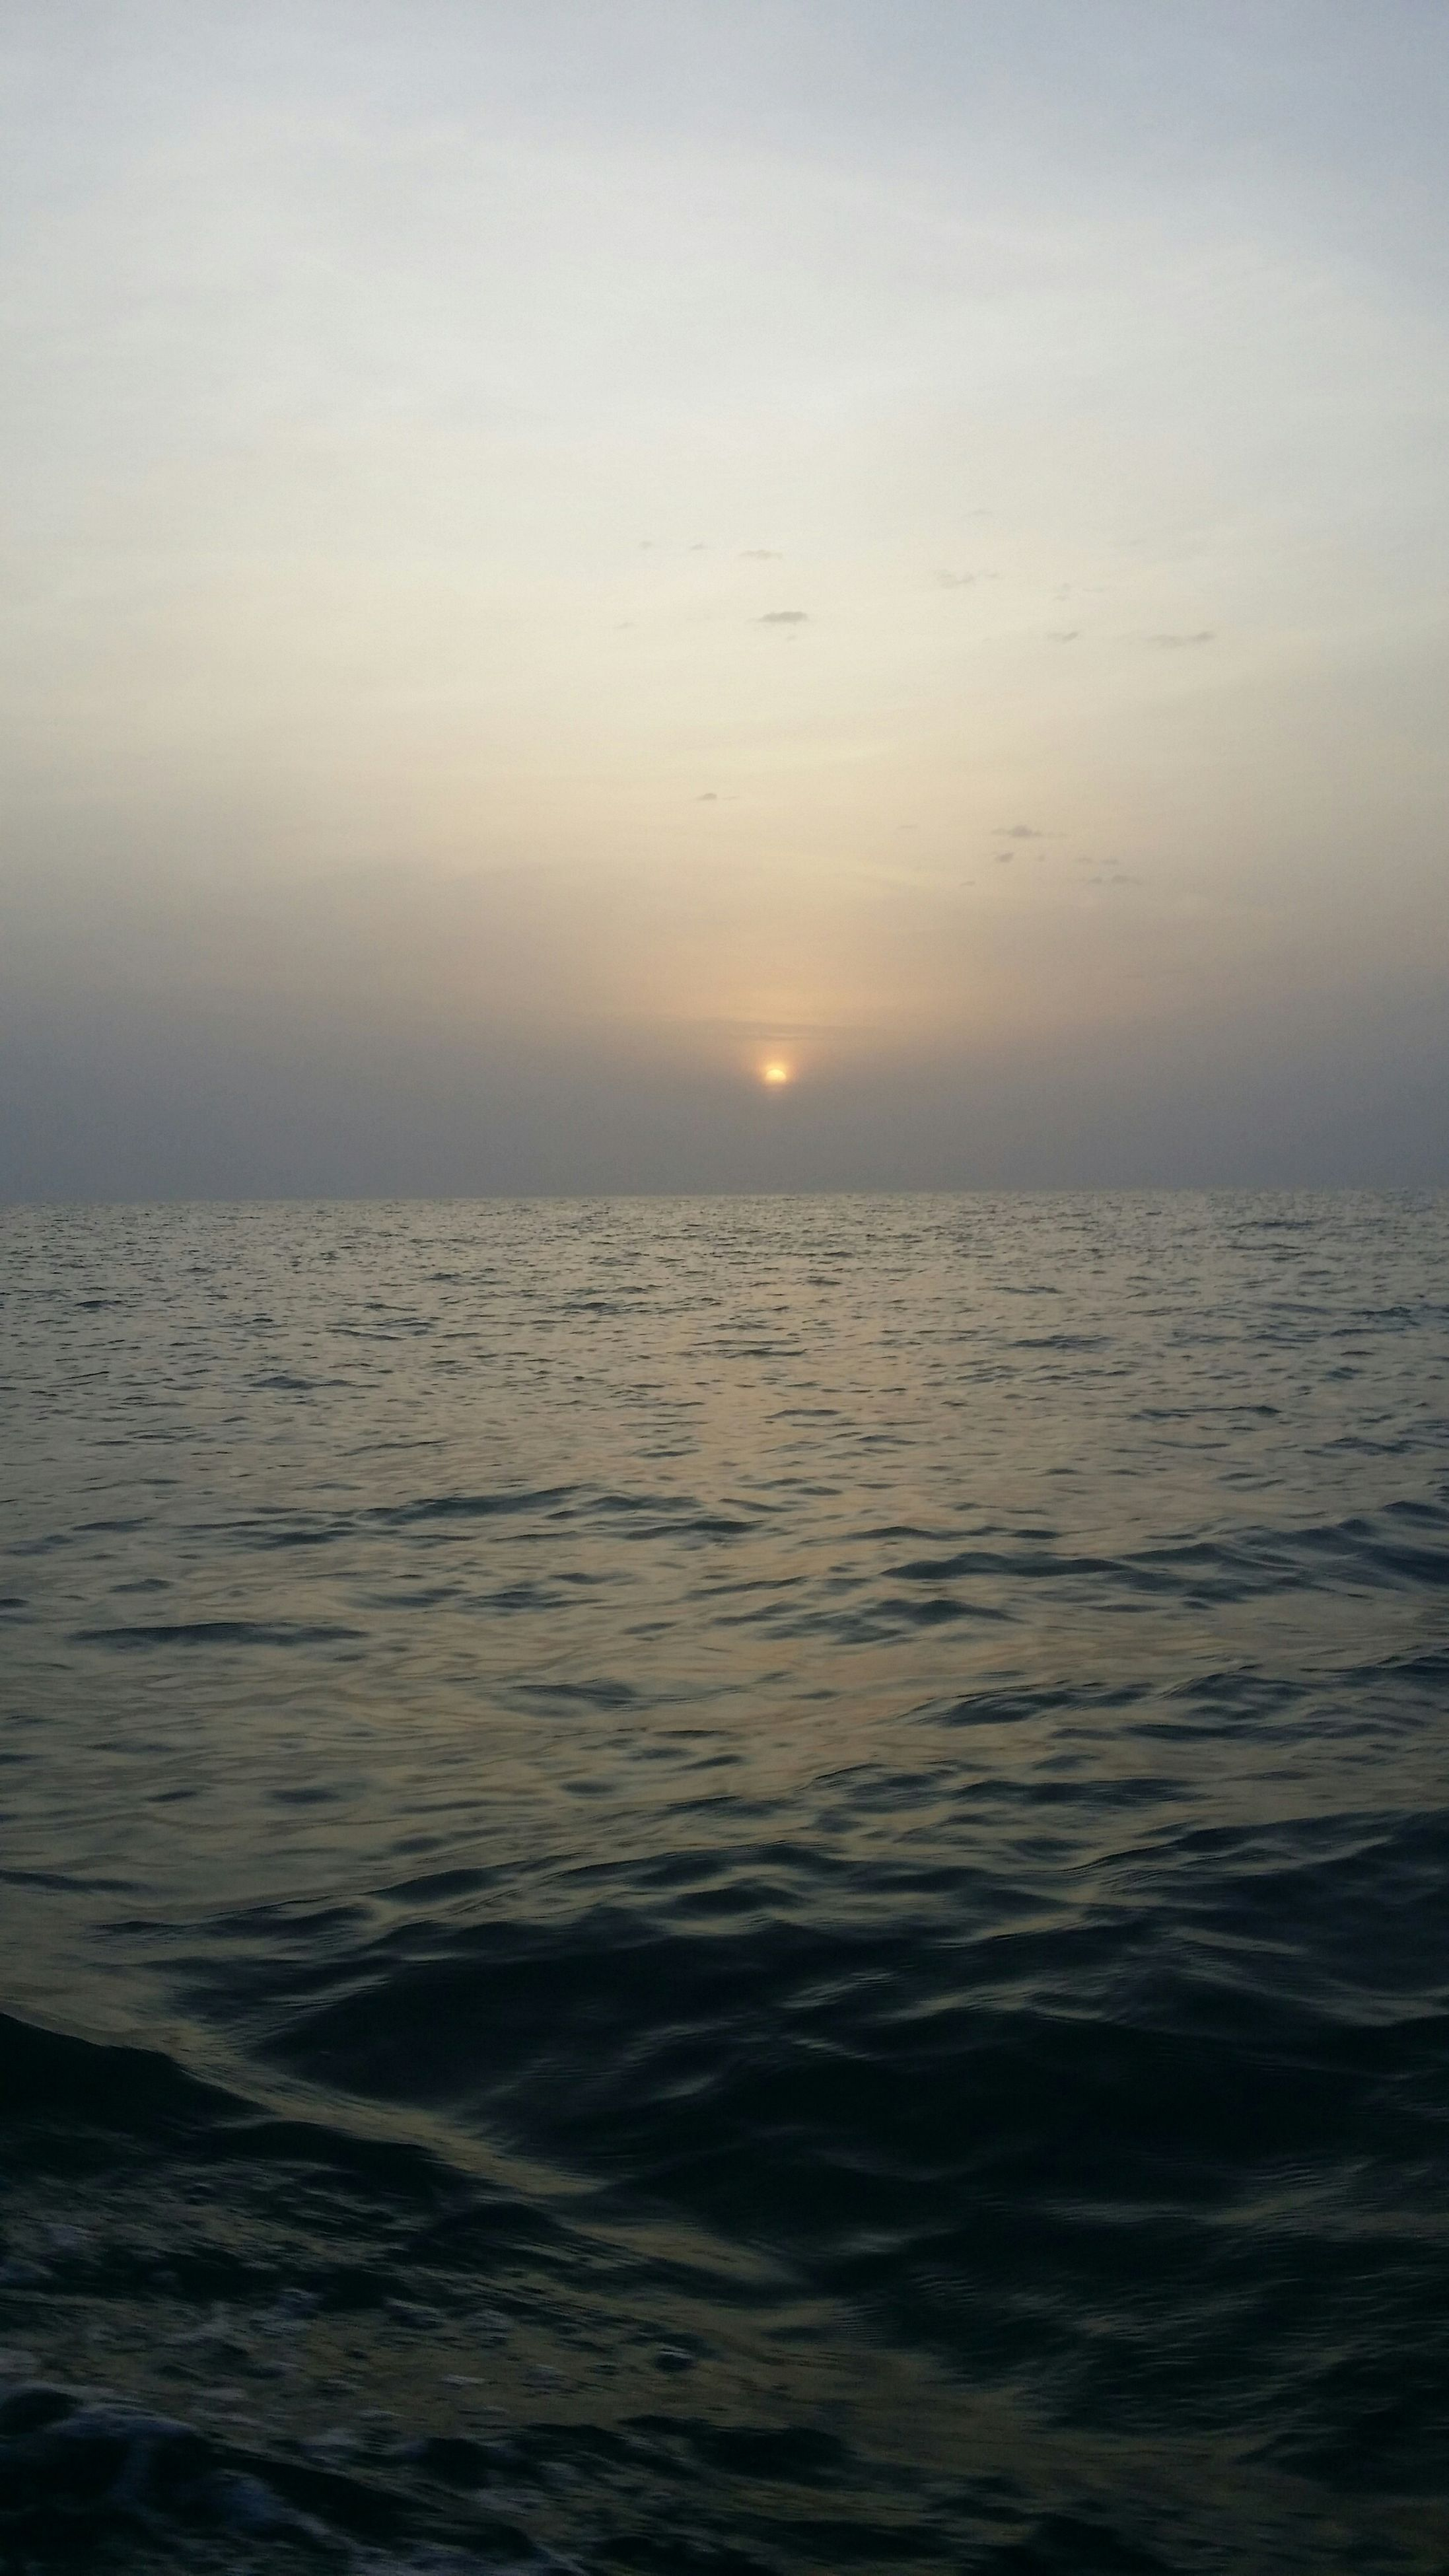 sea, water, horizon over water, scenics, tranquil scene, beauty in nature, waterfront, tranquility, sunset, sky, nature, seascape, idyllic, rippled, wave, sun, outdoors, cloud - sky, remote, no people